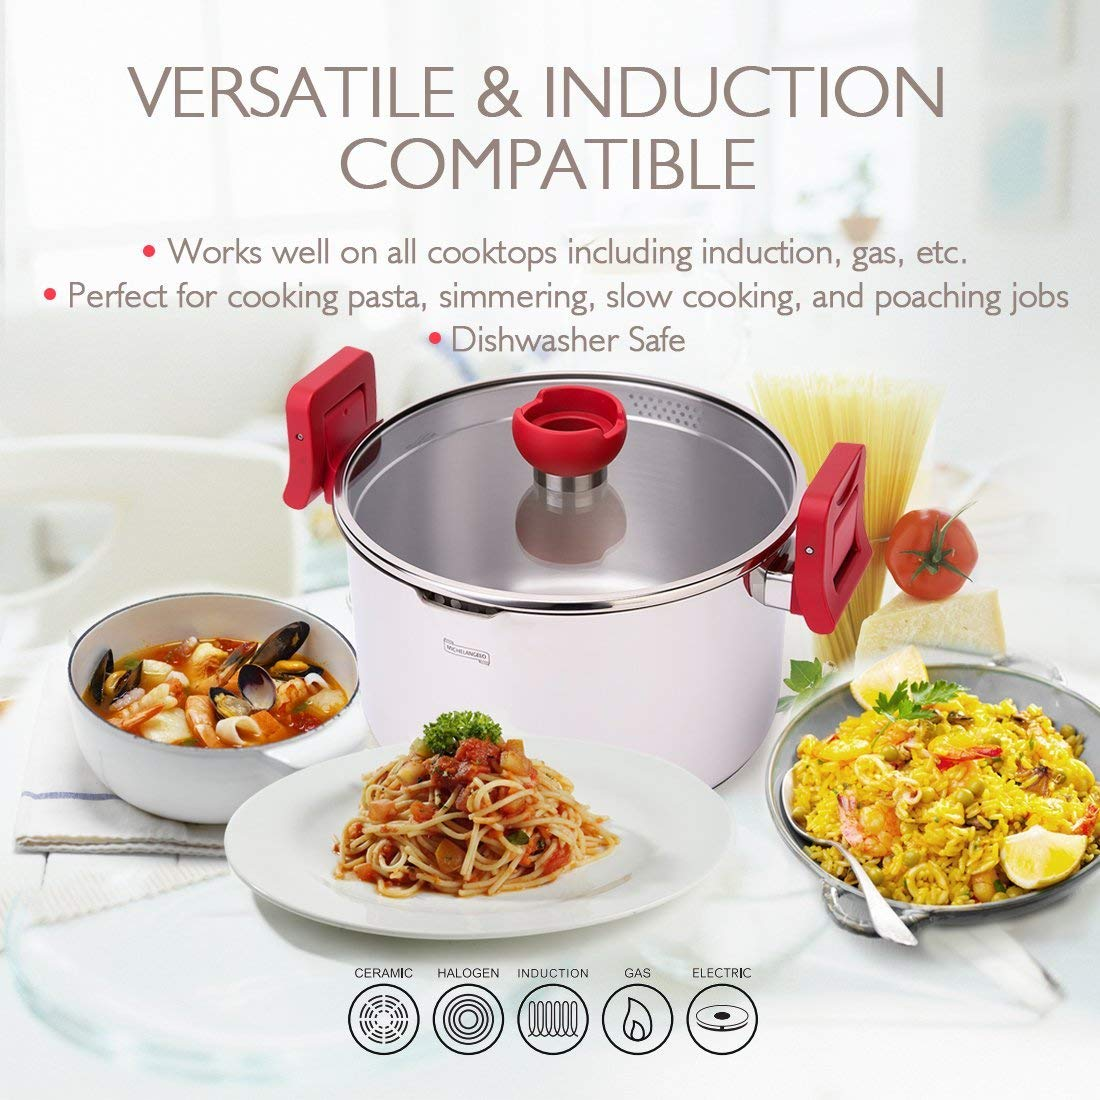 MICHELANGELO 5 Quart Pasta Pot Induction Ready, Stainless Steel Pasta Pot With Strainer Lid, Stainless Steel Dutch Oven Pot, 5 Quart Soup Pots with Lids by MICHELANGELO (Image #2)